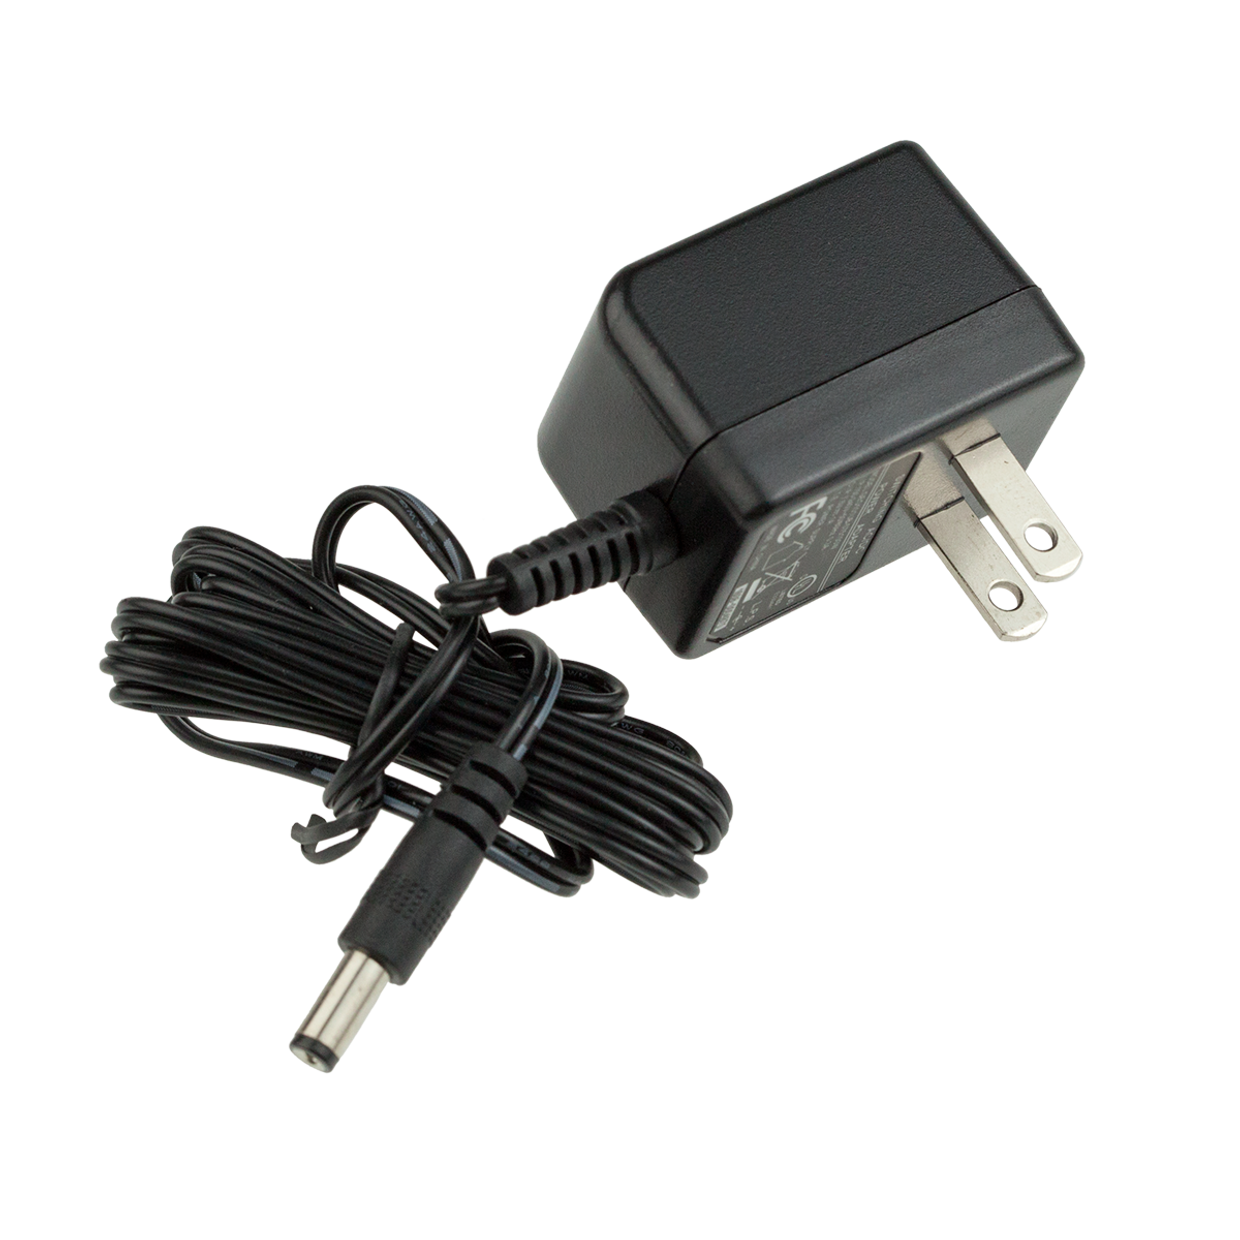 041D0270-transformer-power-adapter